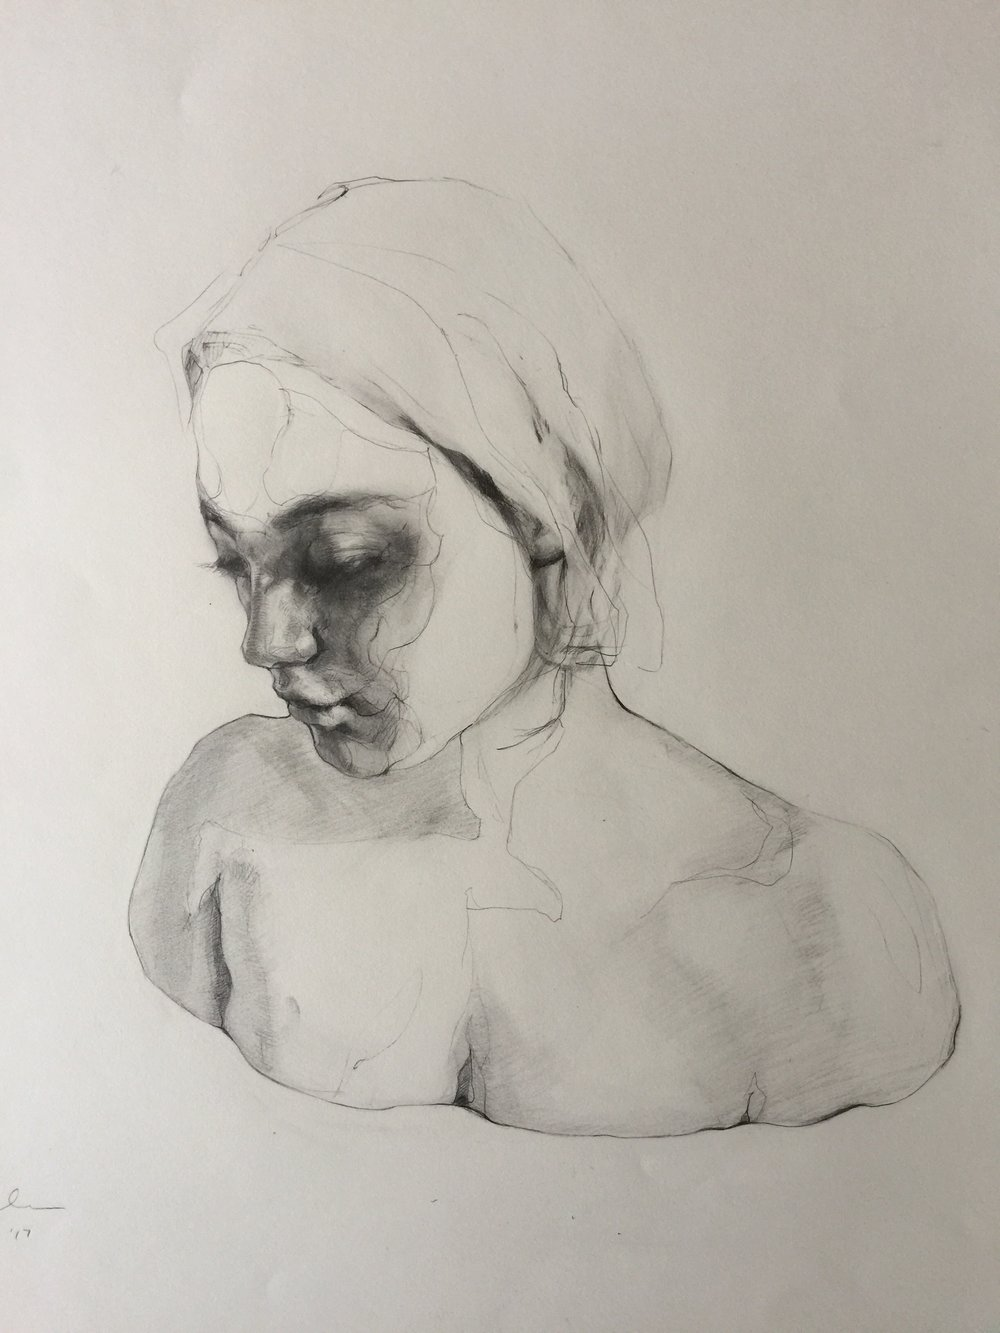 Agnes_Grochulska_Synthesis_Art_Process:Bust_3_pencil_18x24.JPG